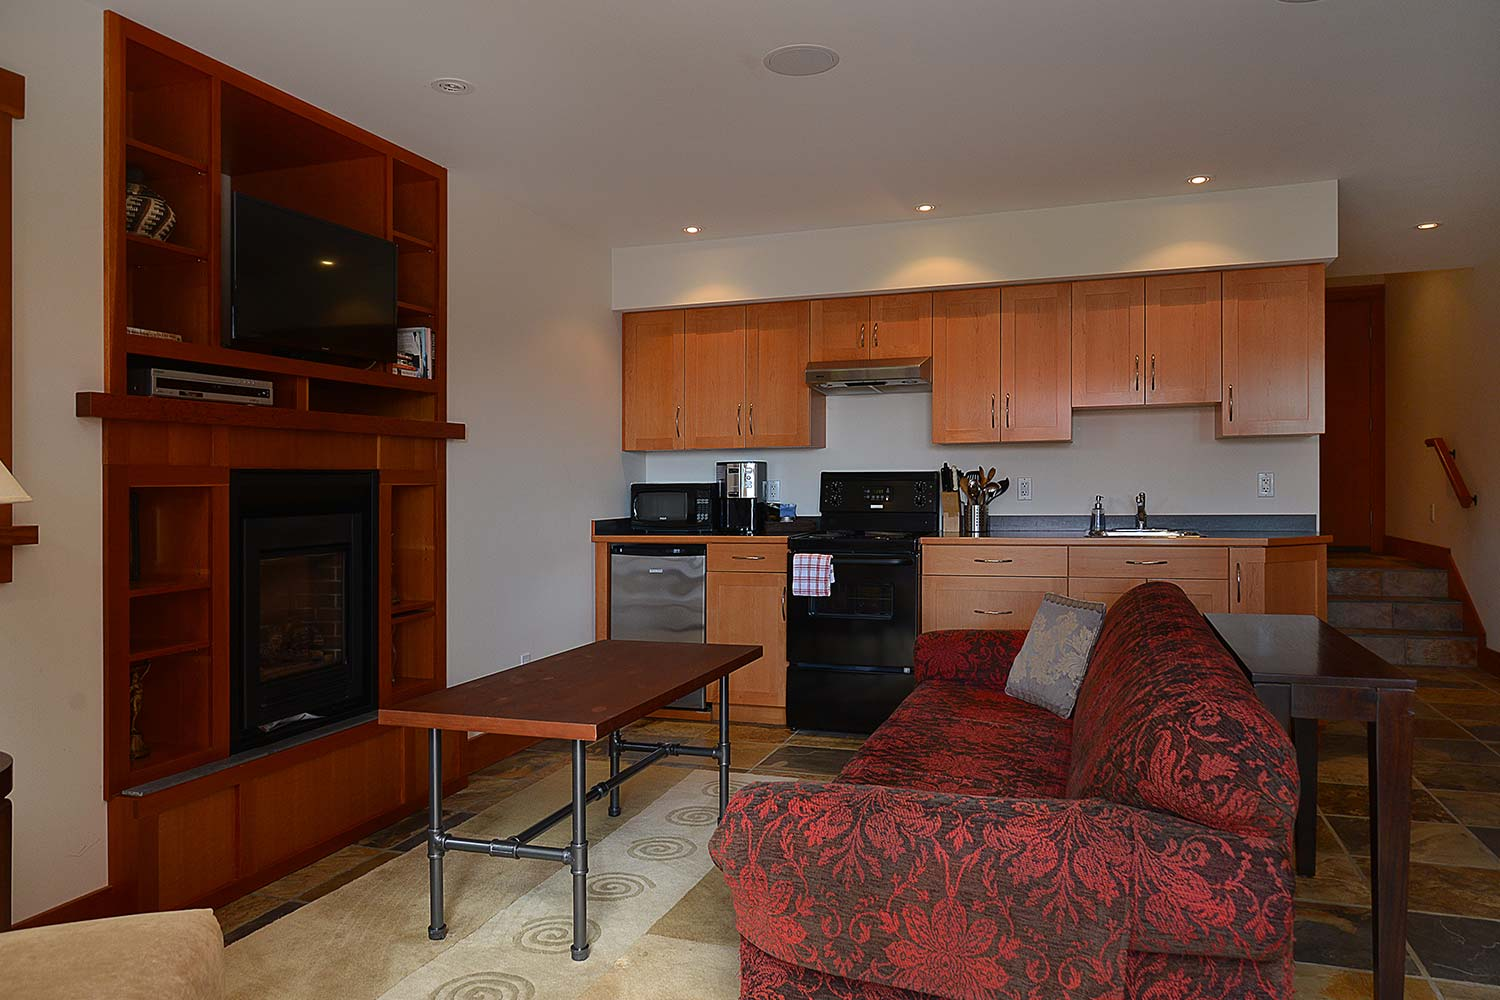 The Garden Suite living room of this luxury furnished rental house features a kitchenette, couch, fridge, dining table, & TV.